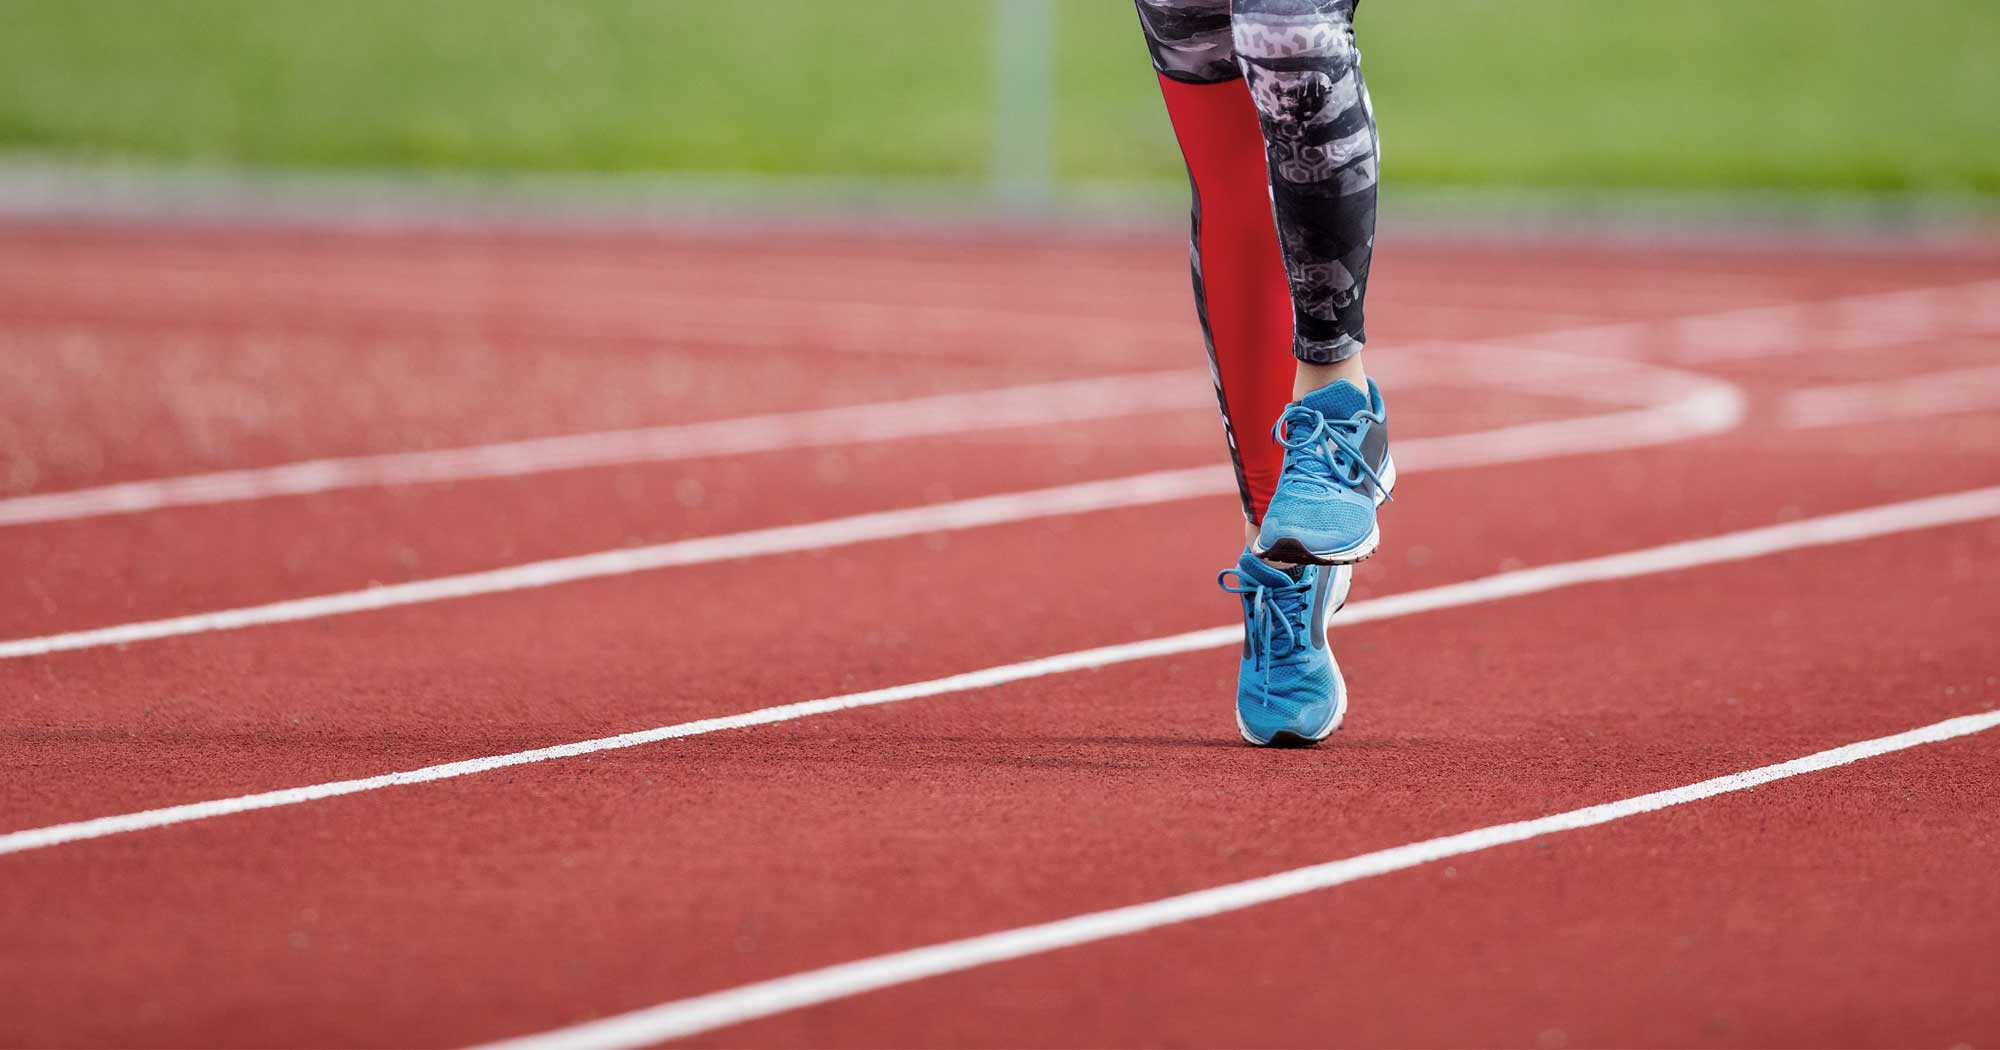 An athlete works on some technique on a track